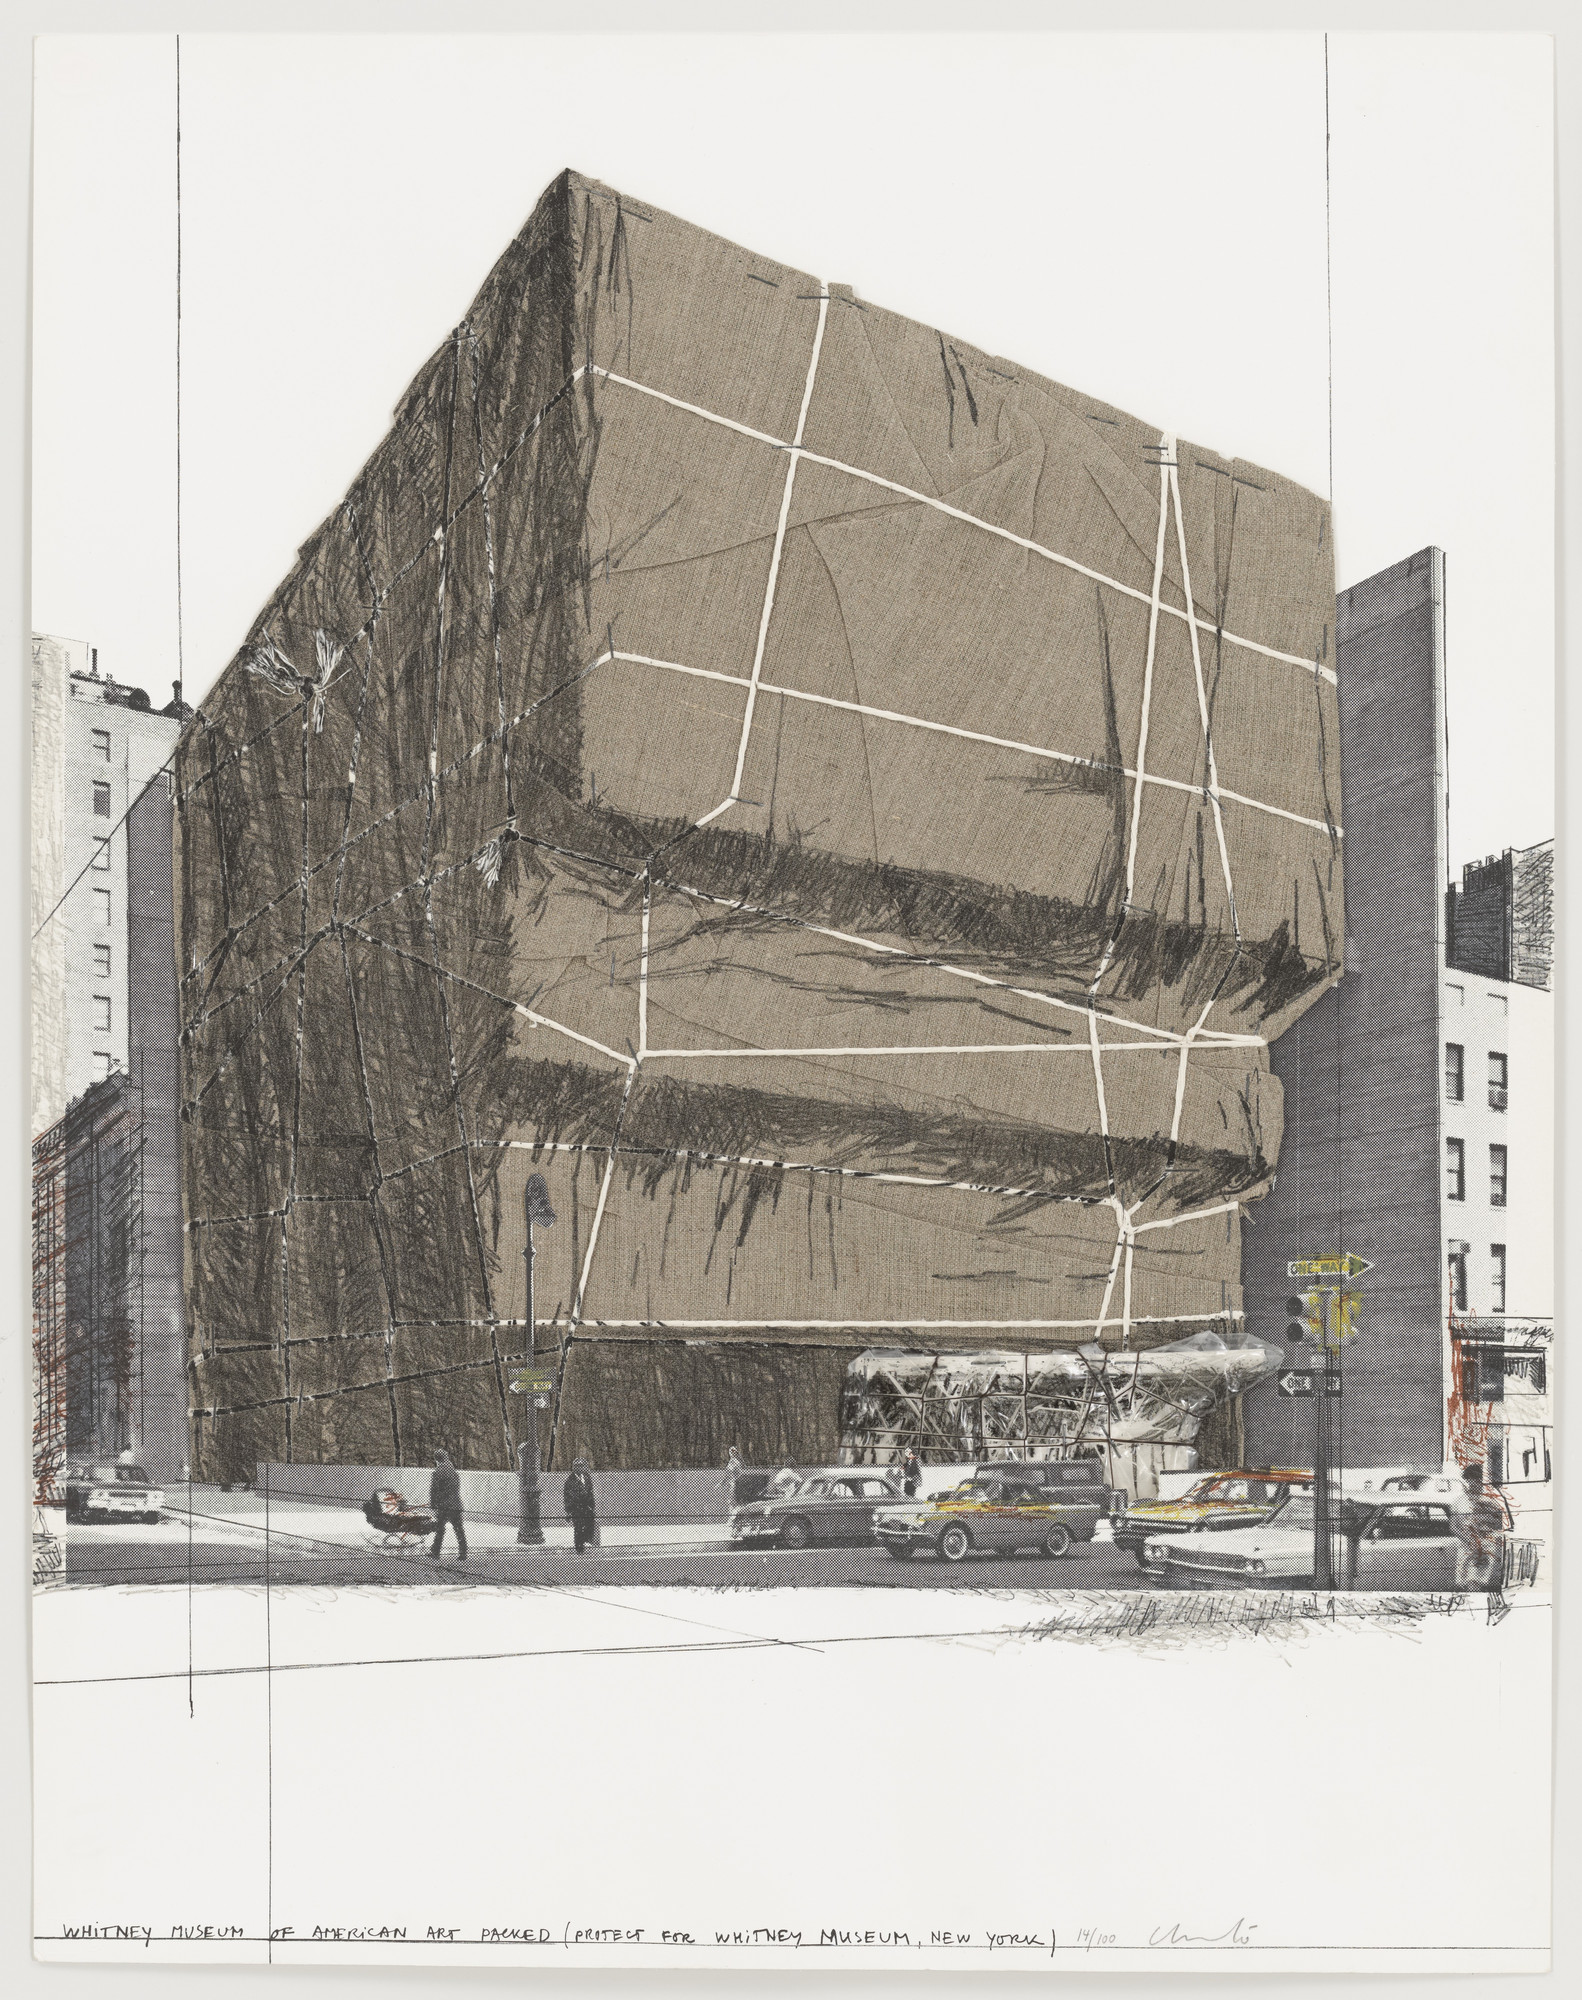 Christo. The Whitney Museum, New York, Packed from the portfolio (Some) Not Realized Projects. (February 22, 1971)